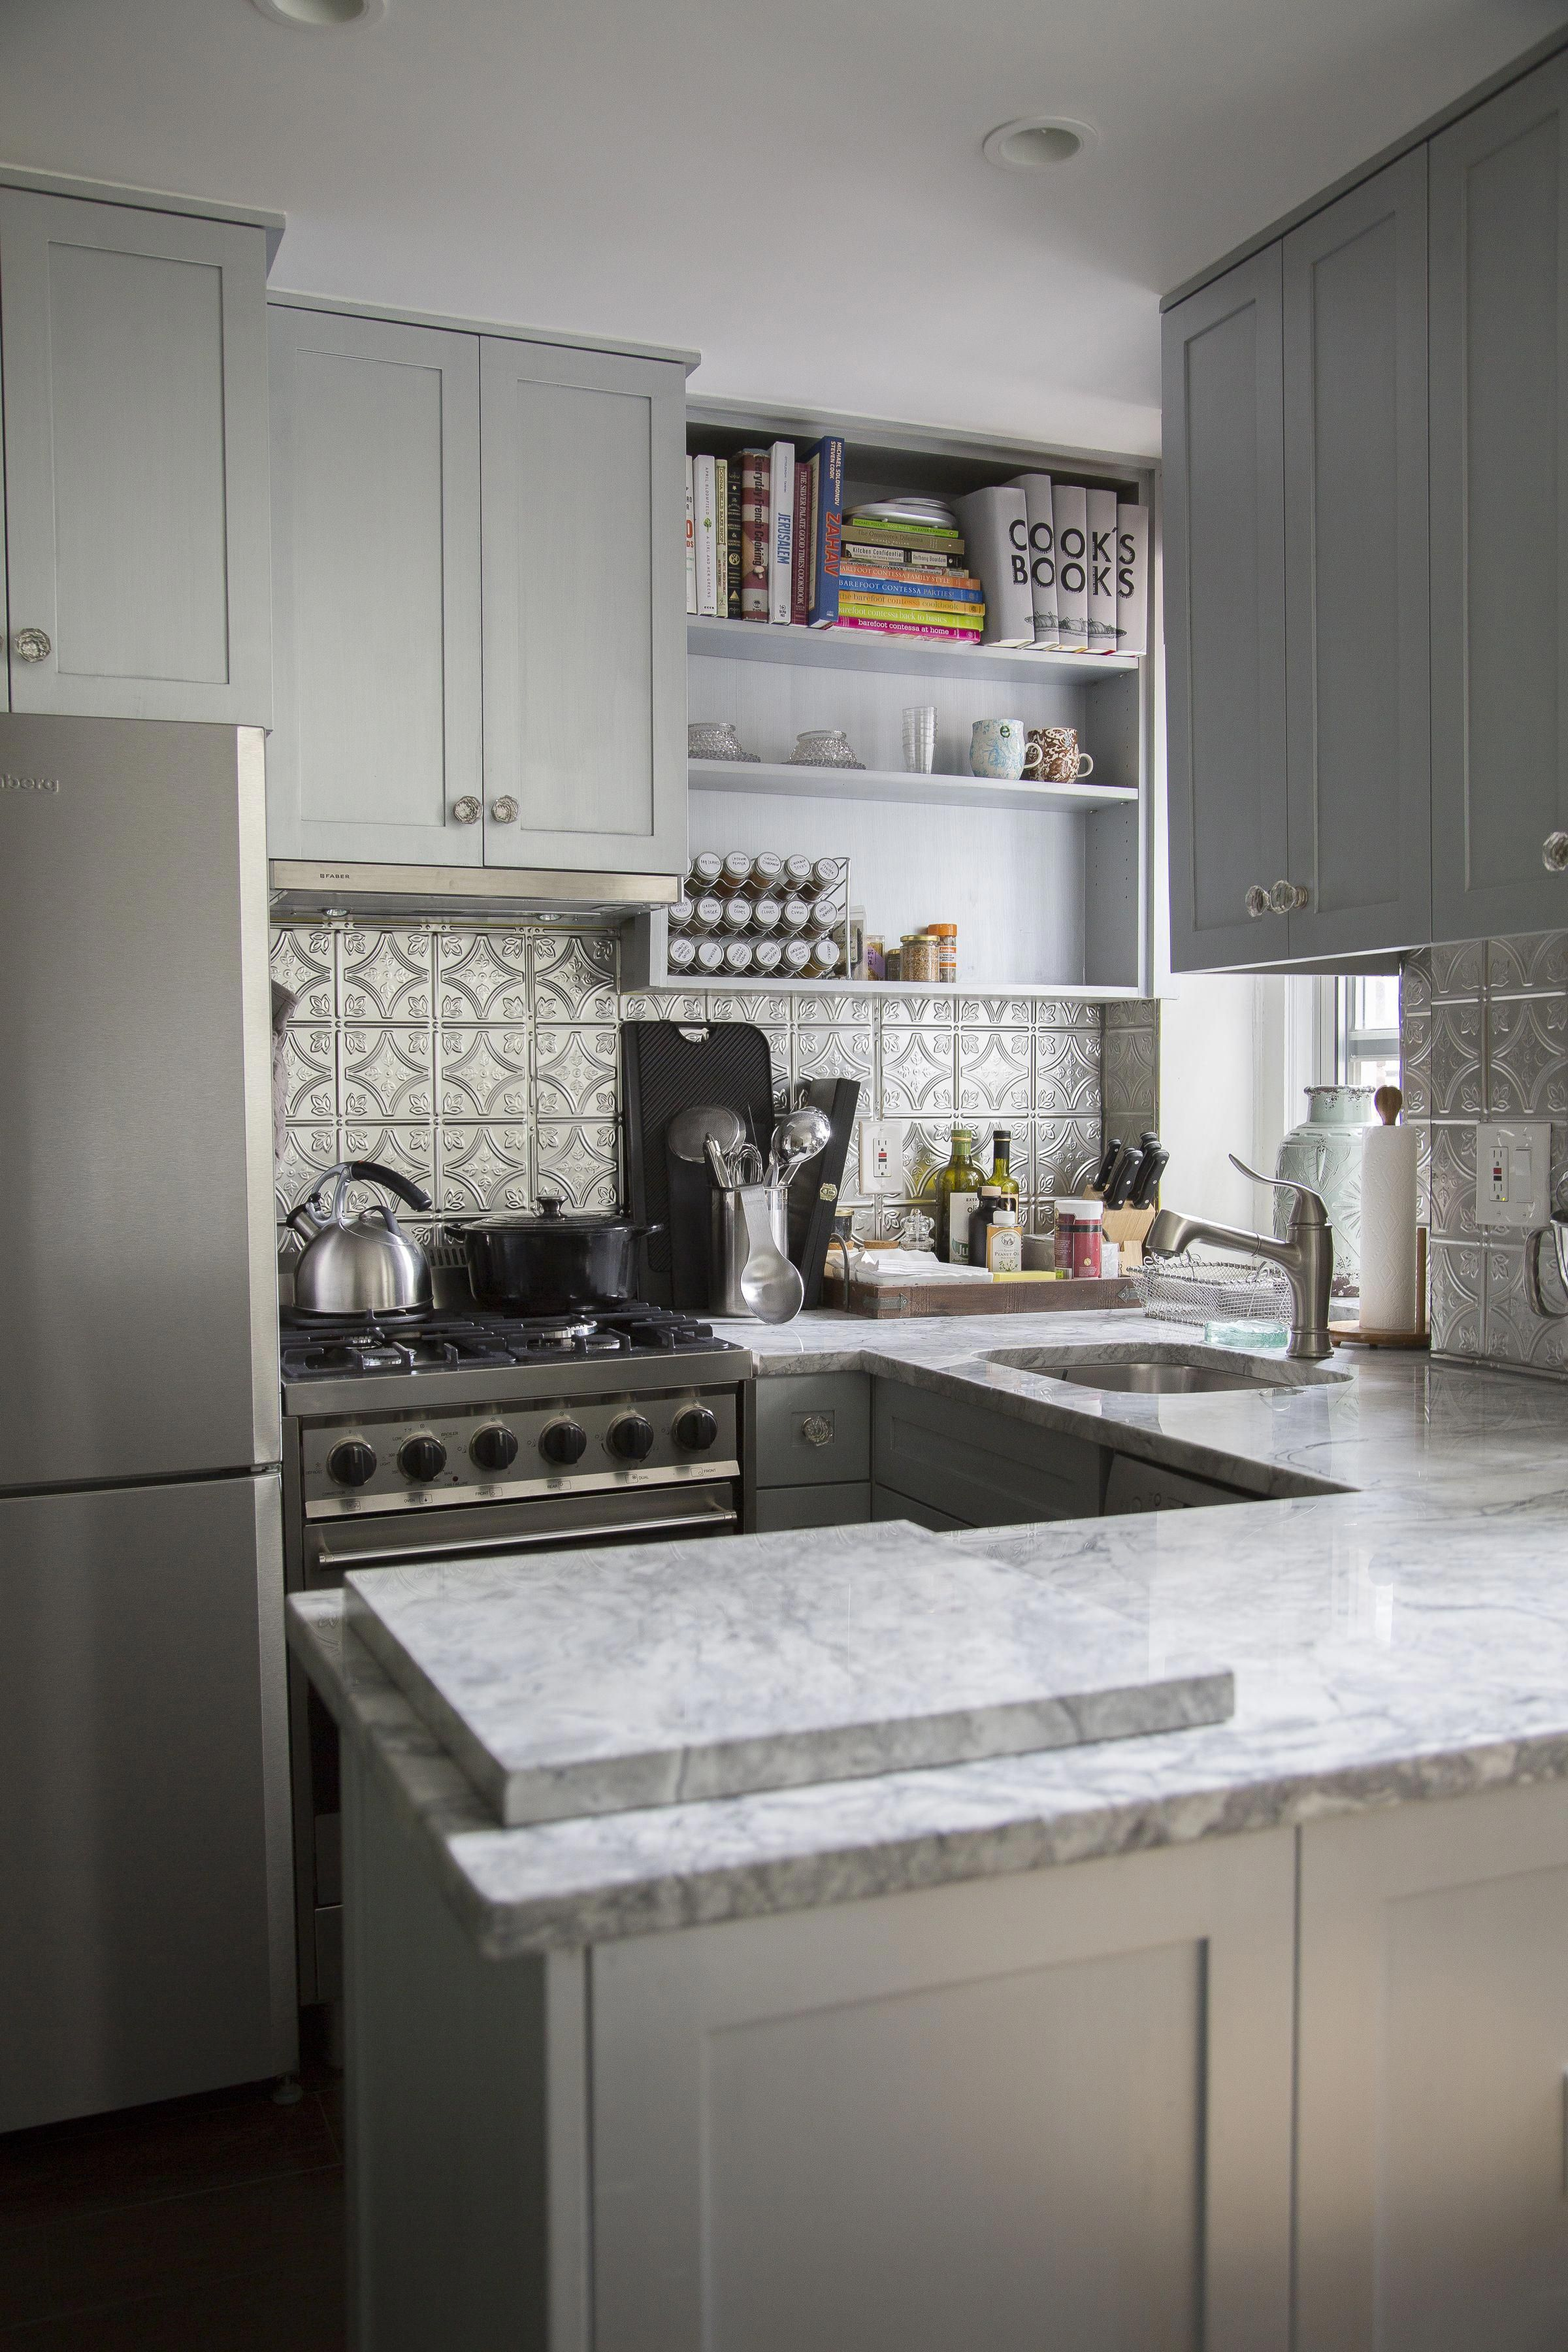 The Kitchen Cabinet Paint Is Benjamin Moore Metallic Silver 2132 60 The Ceiling Paint Is Kitchen Design Small Kitchen Remodel Small Studio Apartment Kitchen